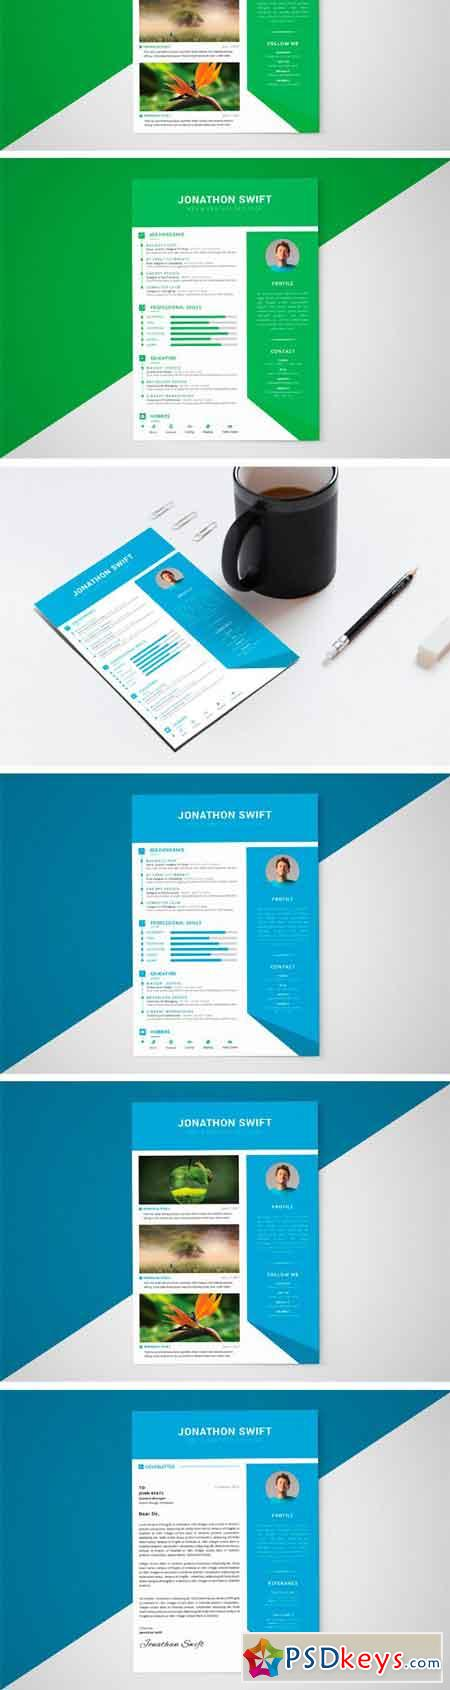 CV Resume Template (3 Pages) 2315964